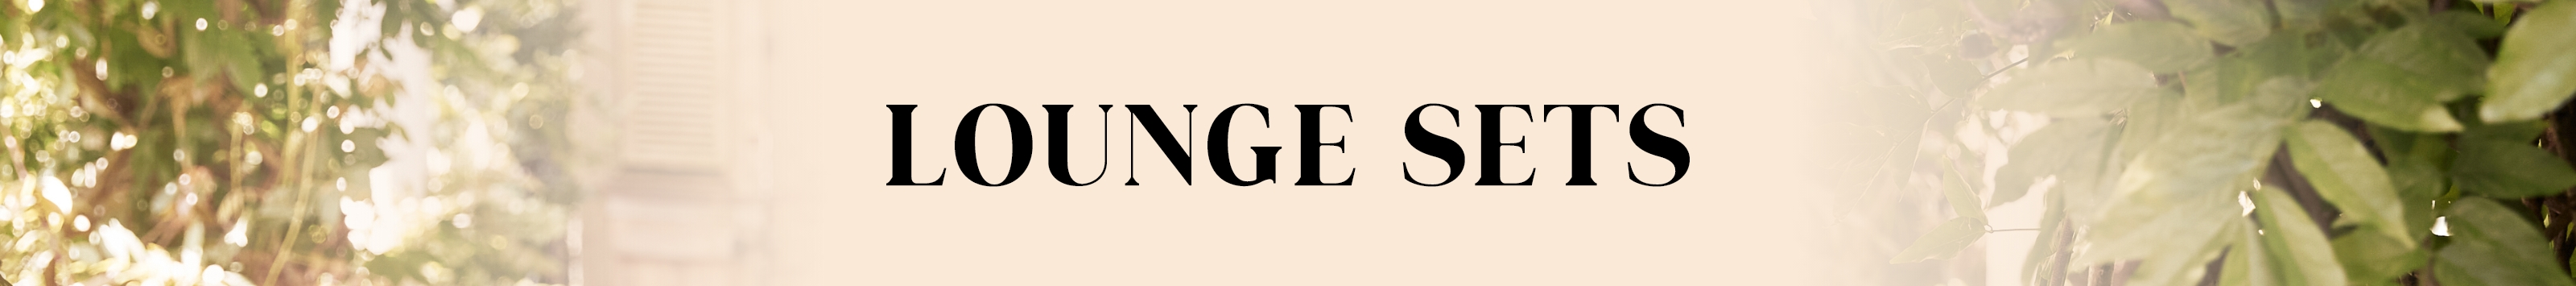 banner-category-lounge-loungesets-1.jpg